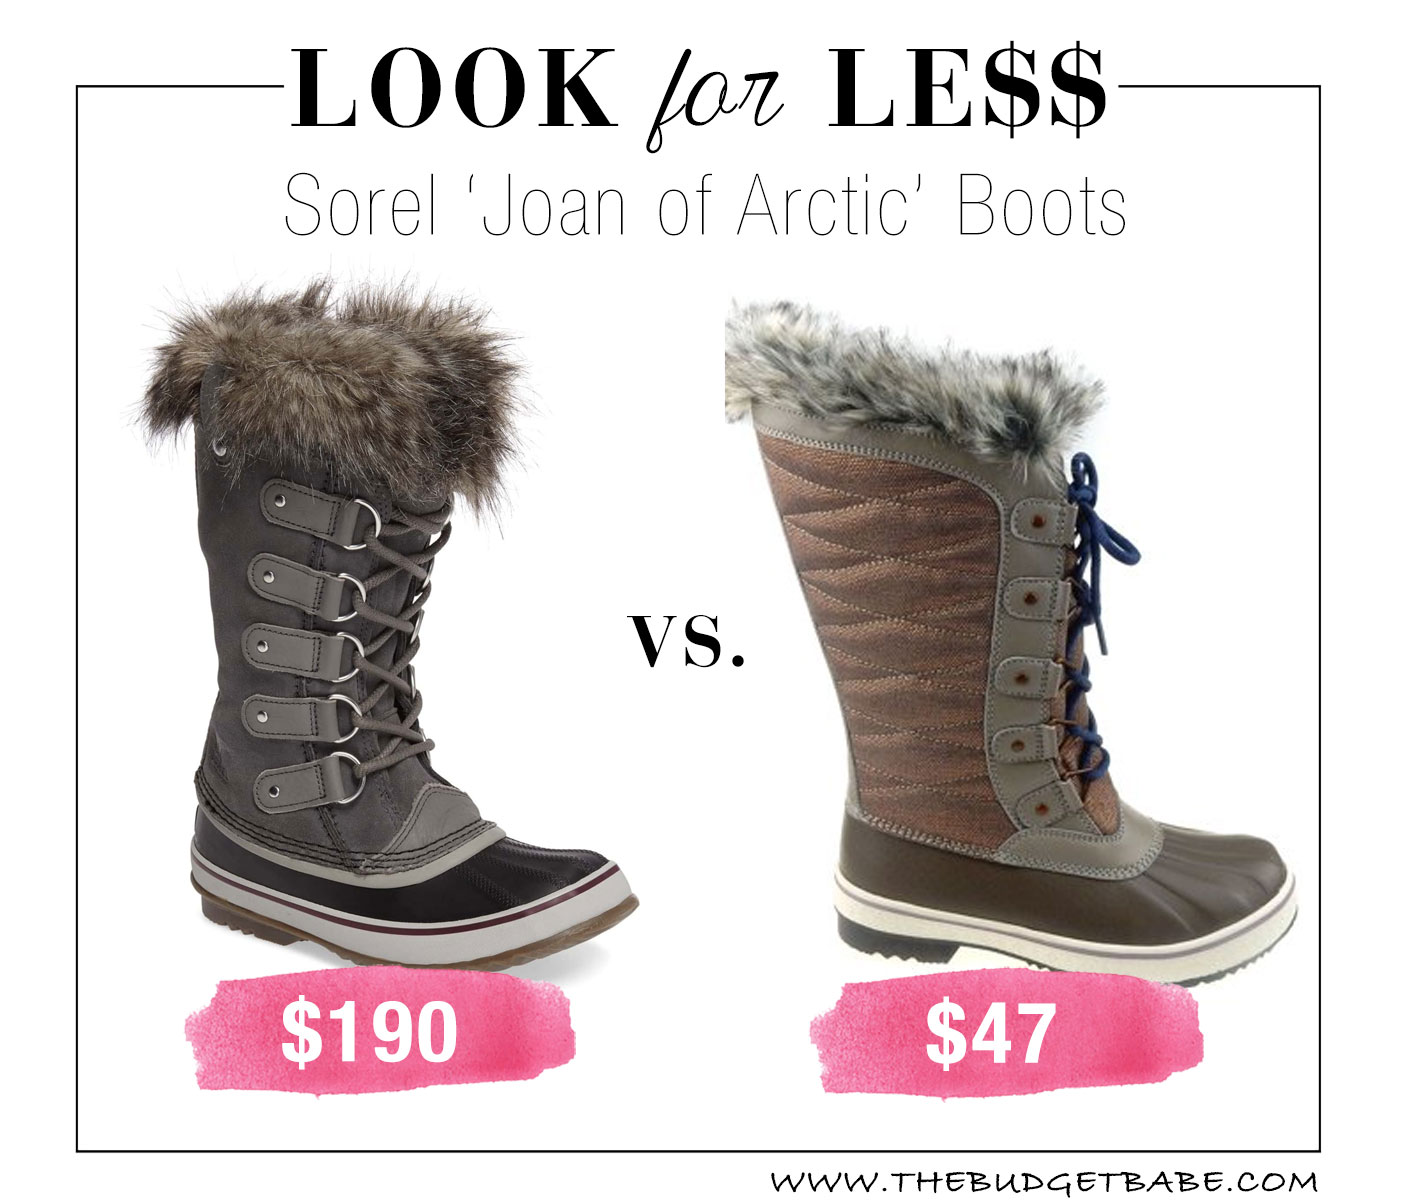 caff37627e0 Look for Less  Sorel  Joan of Arctic  Boots - The Budget Babe ...